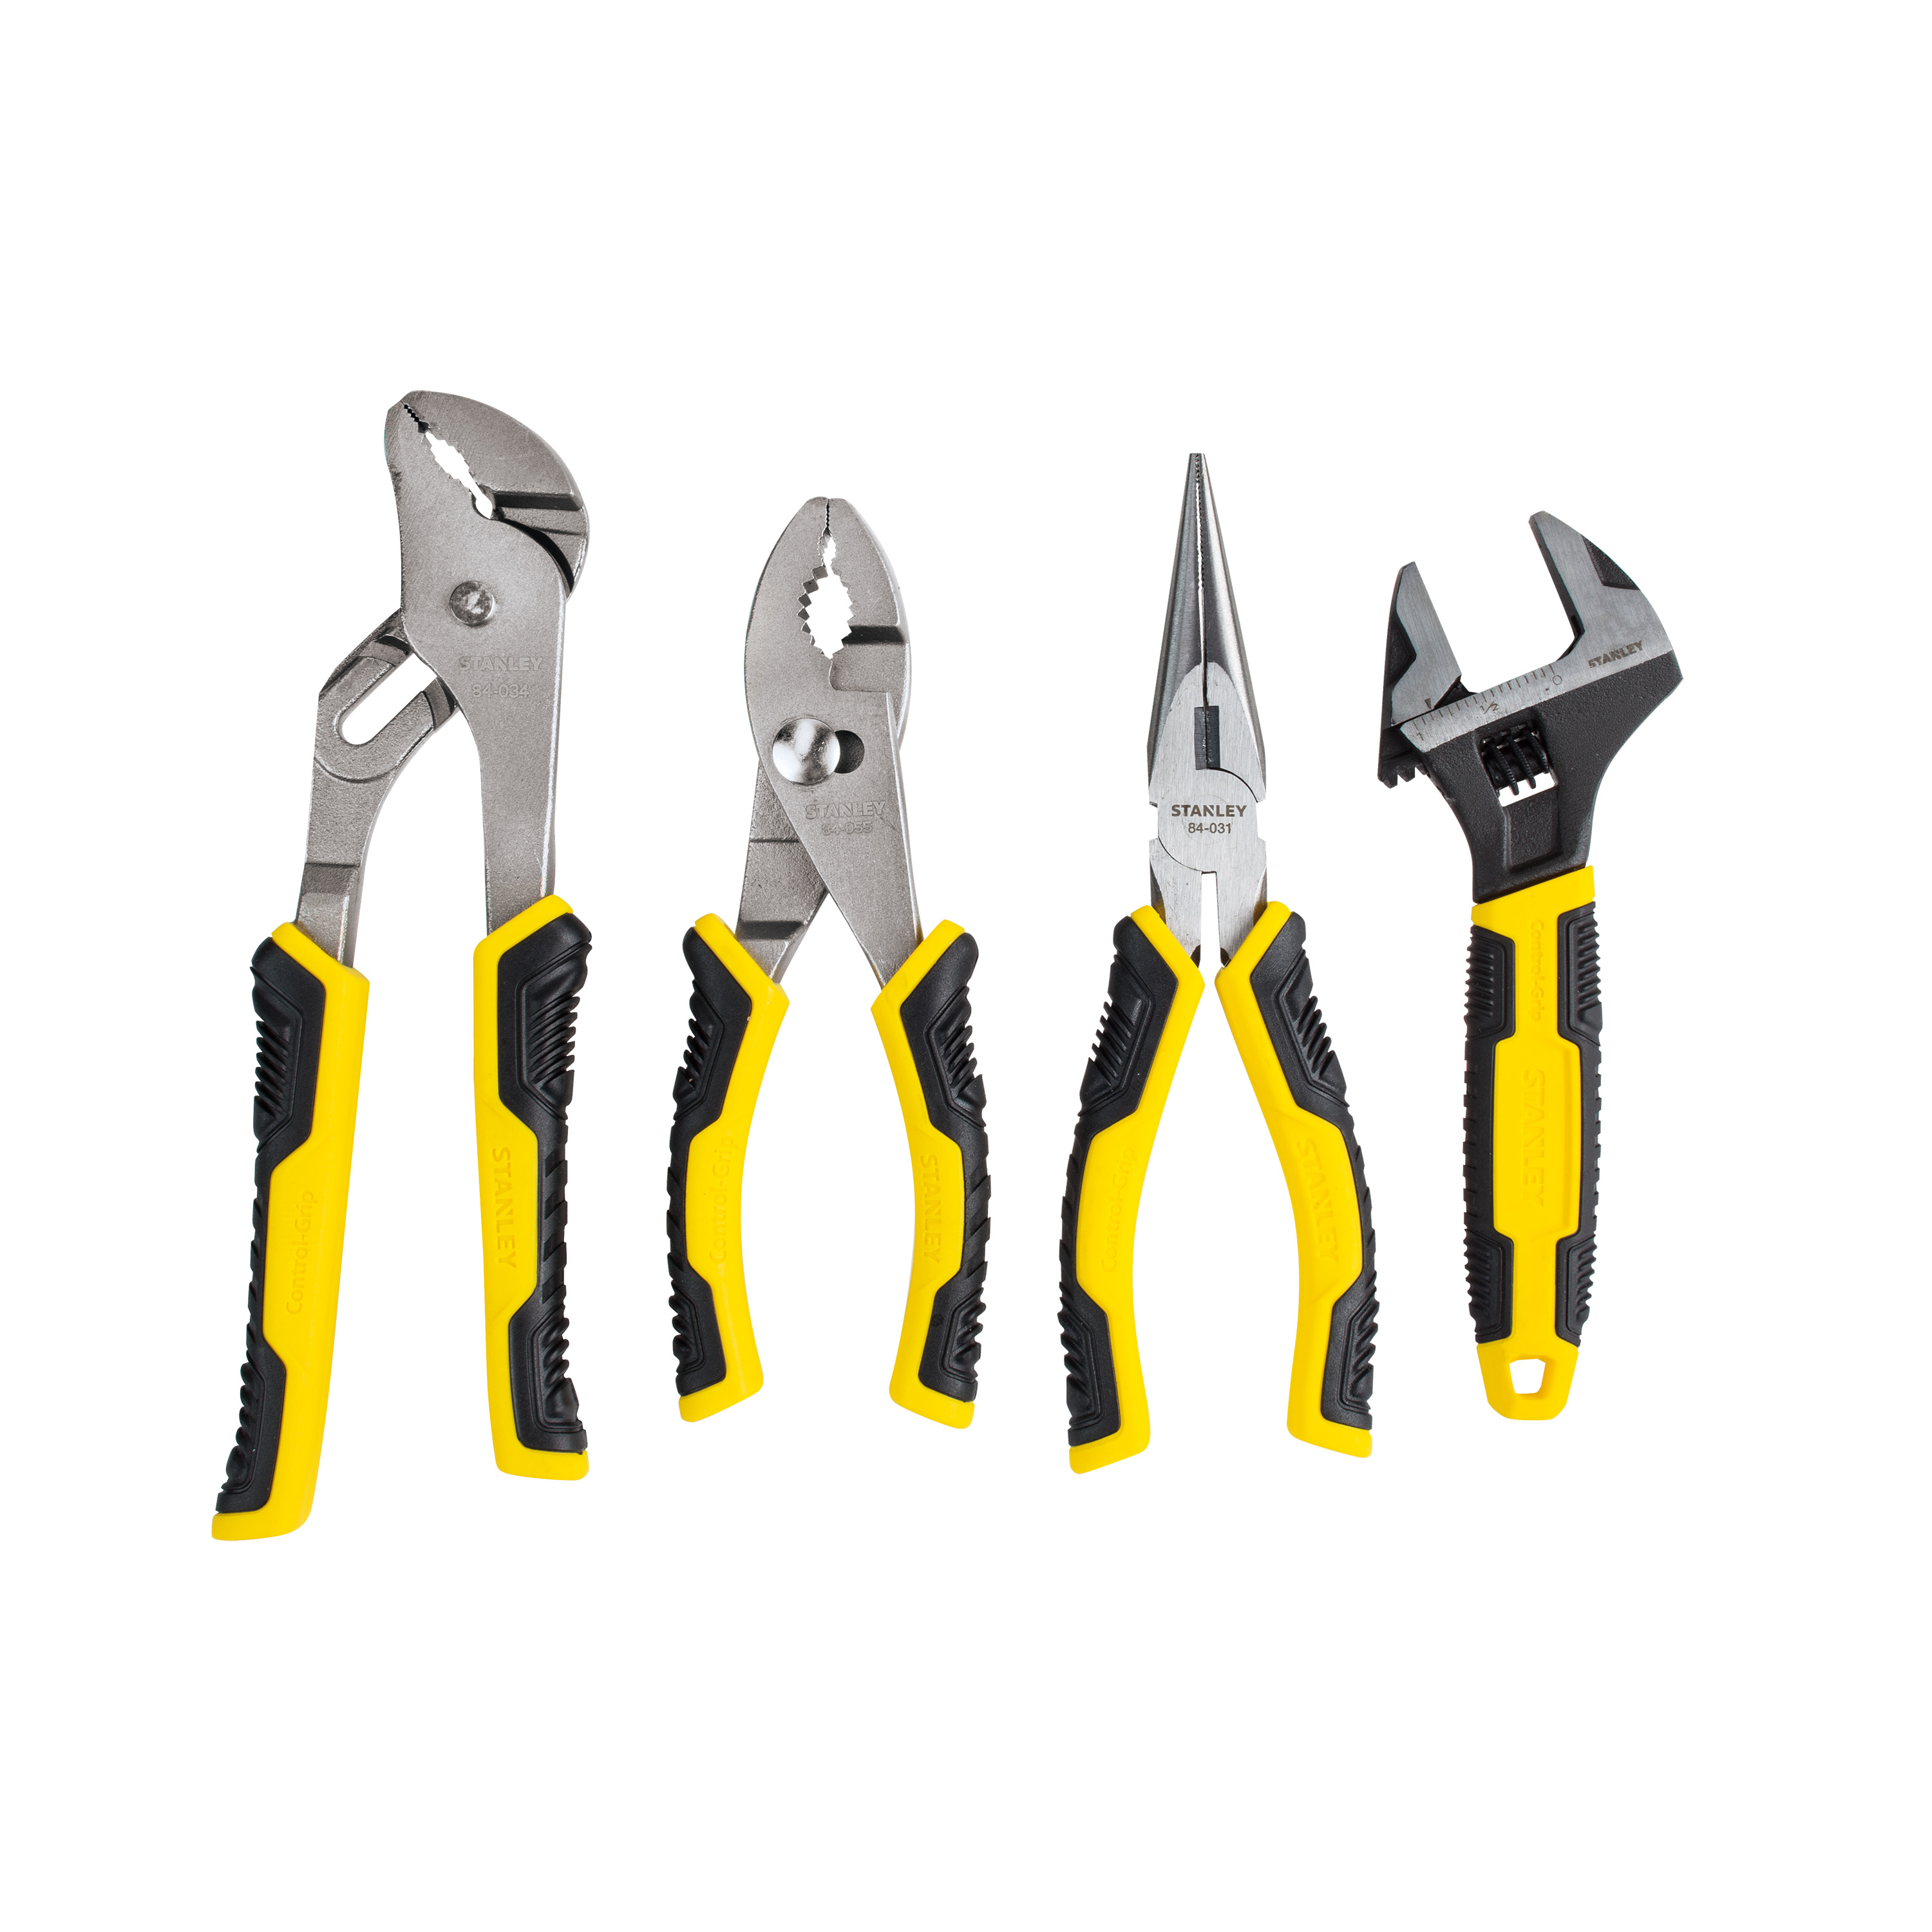 STANLEY® 84-558 4-Piece Plier and Adjustable Wrench Set